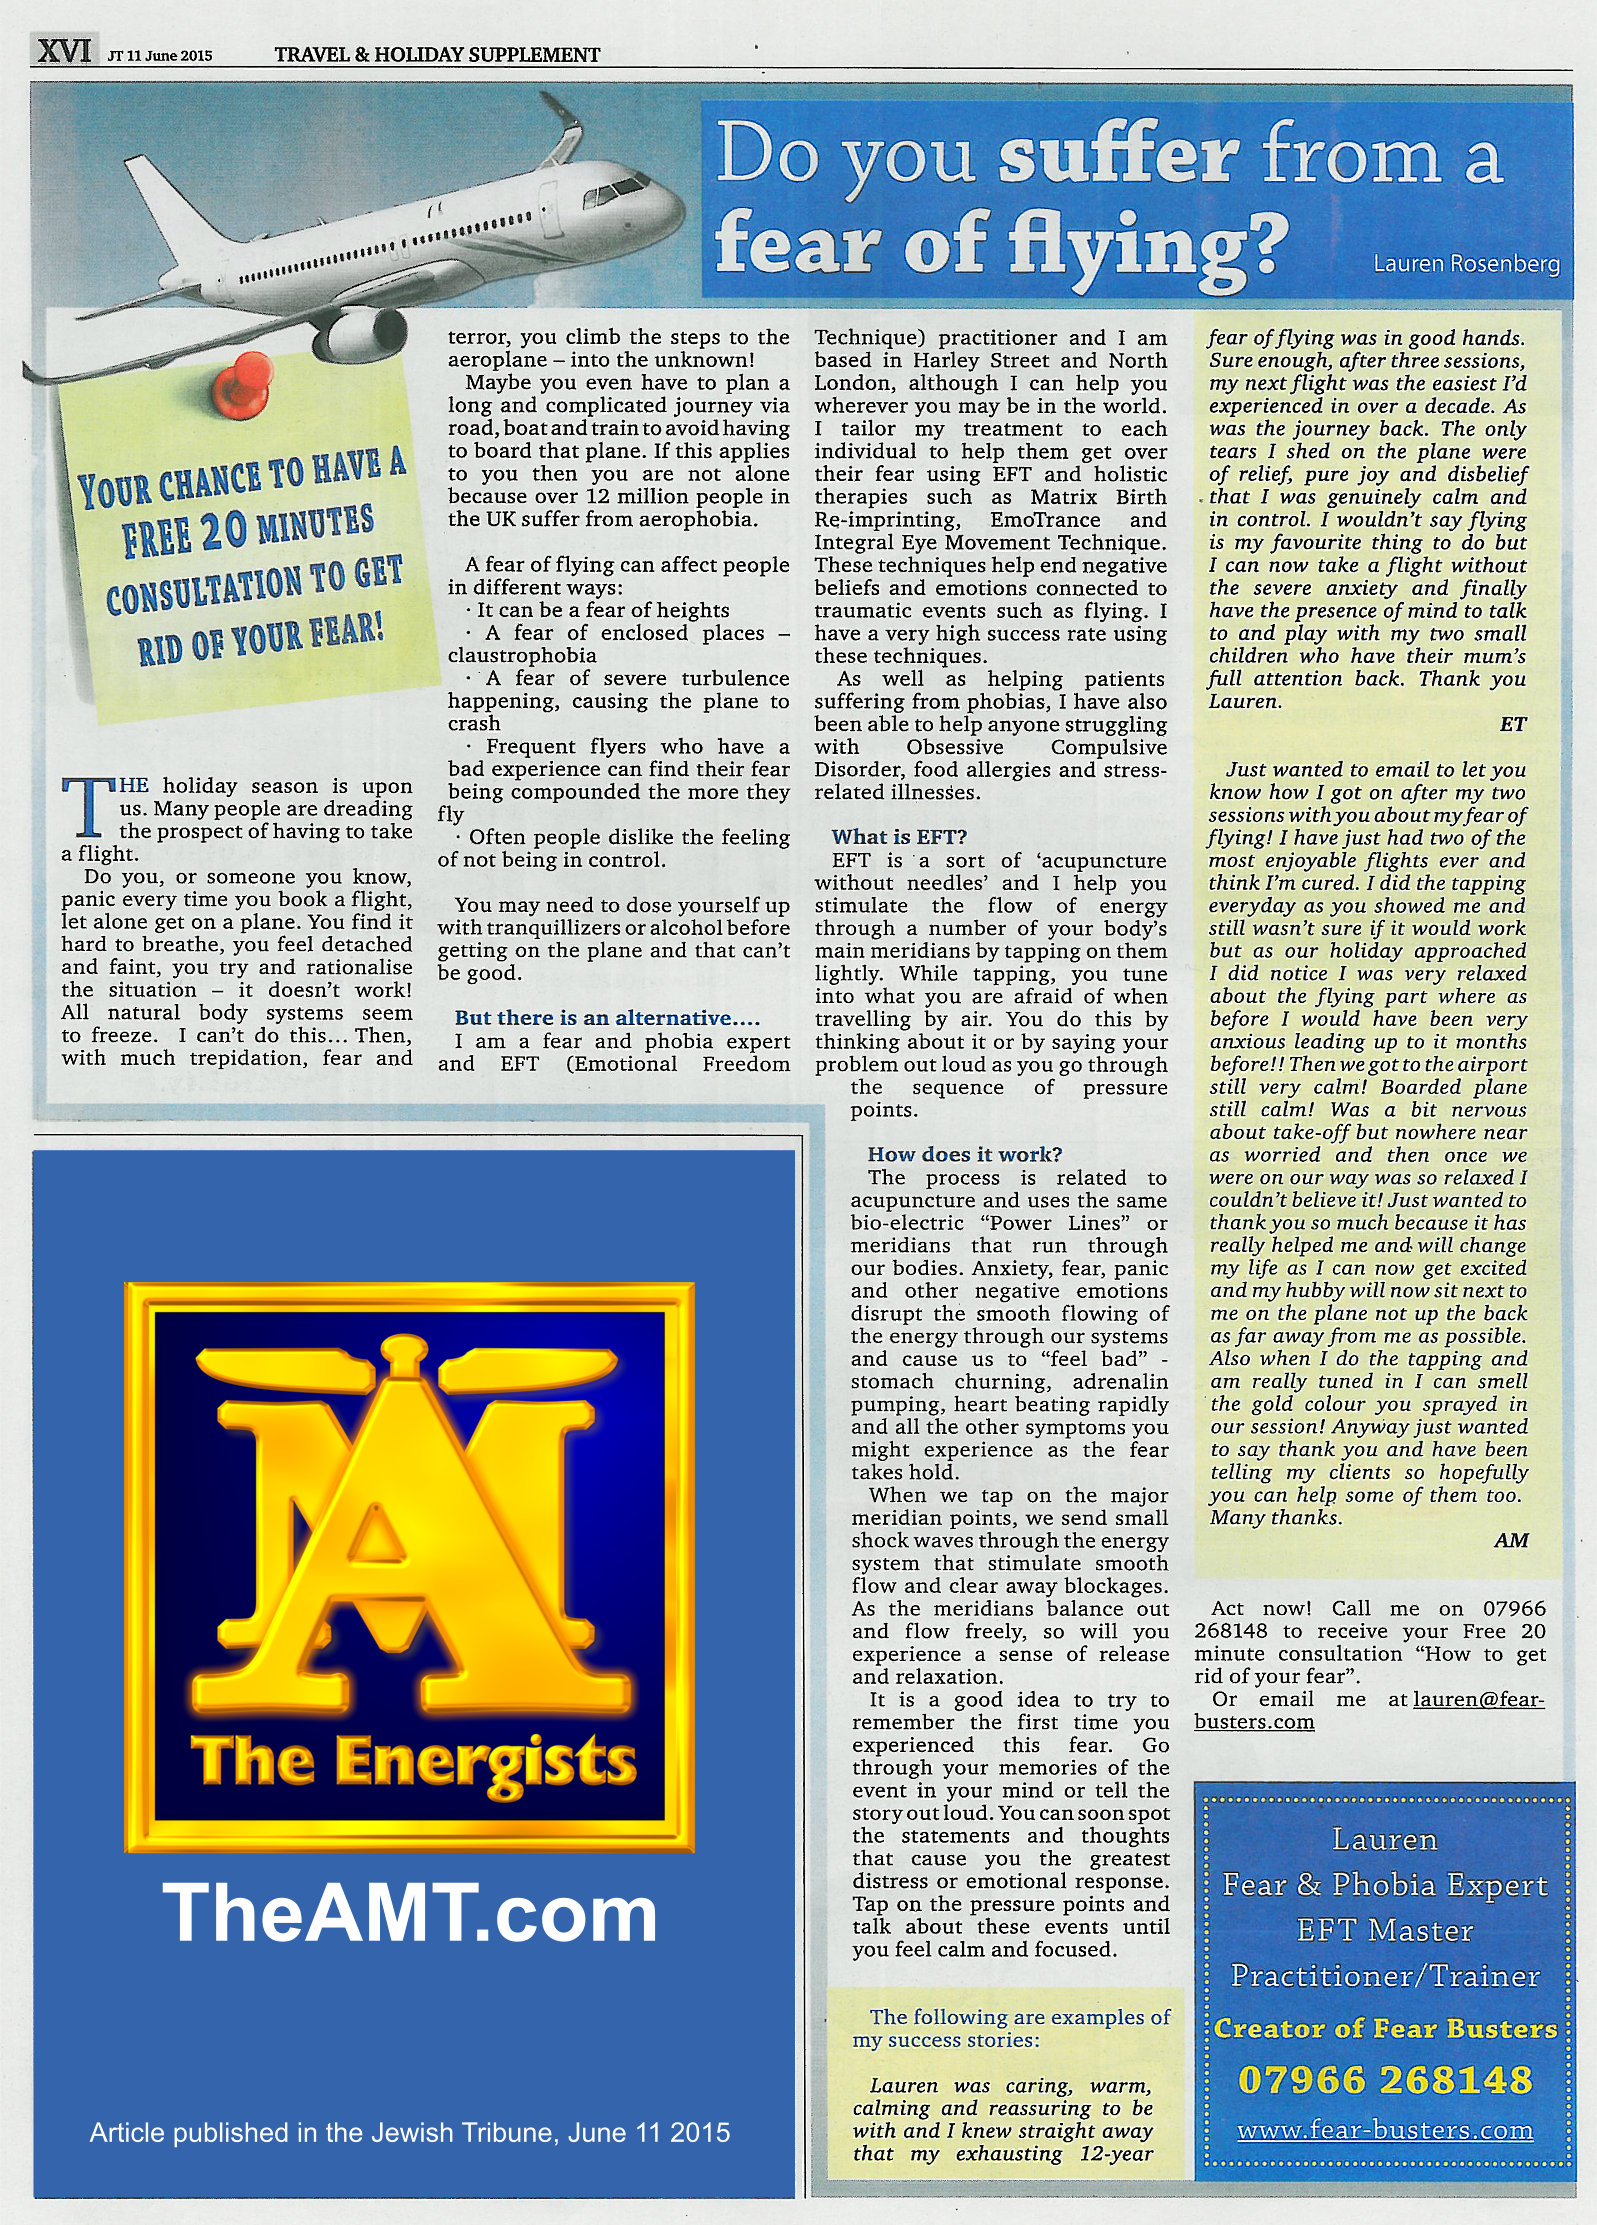 Lauren Rosenberg Fear Of Flying Energy EFT Article